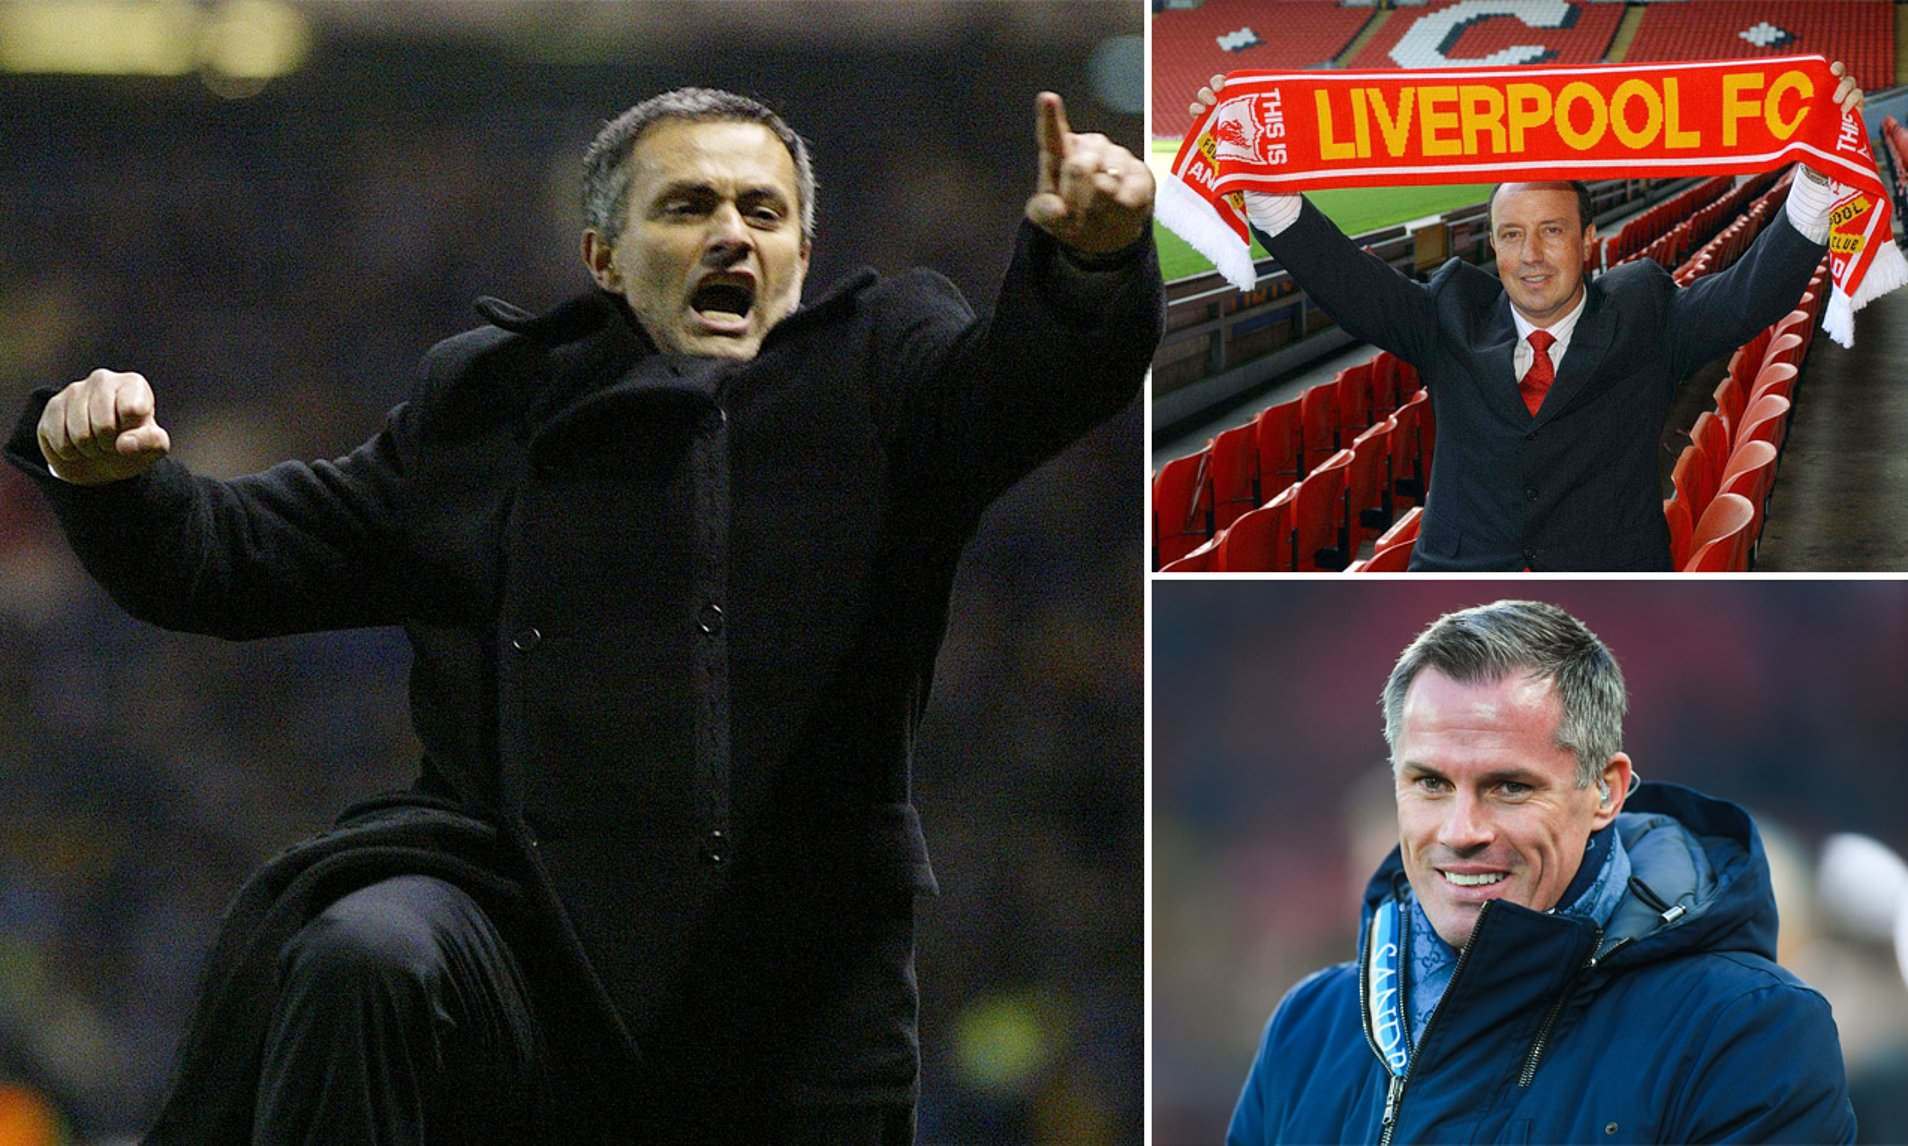 Carragher: Why Liverpool Snubbed Mourinho And Appointed Benitez As Manager